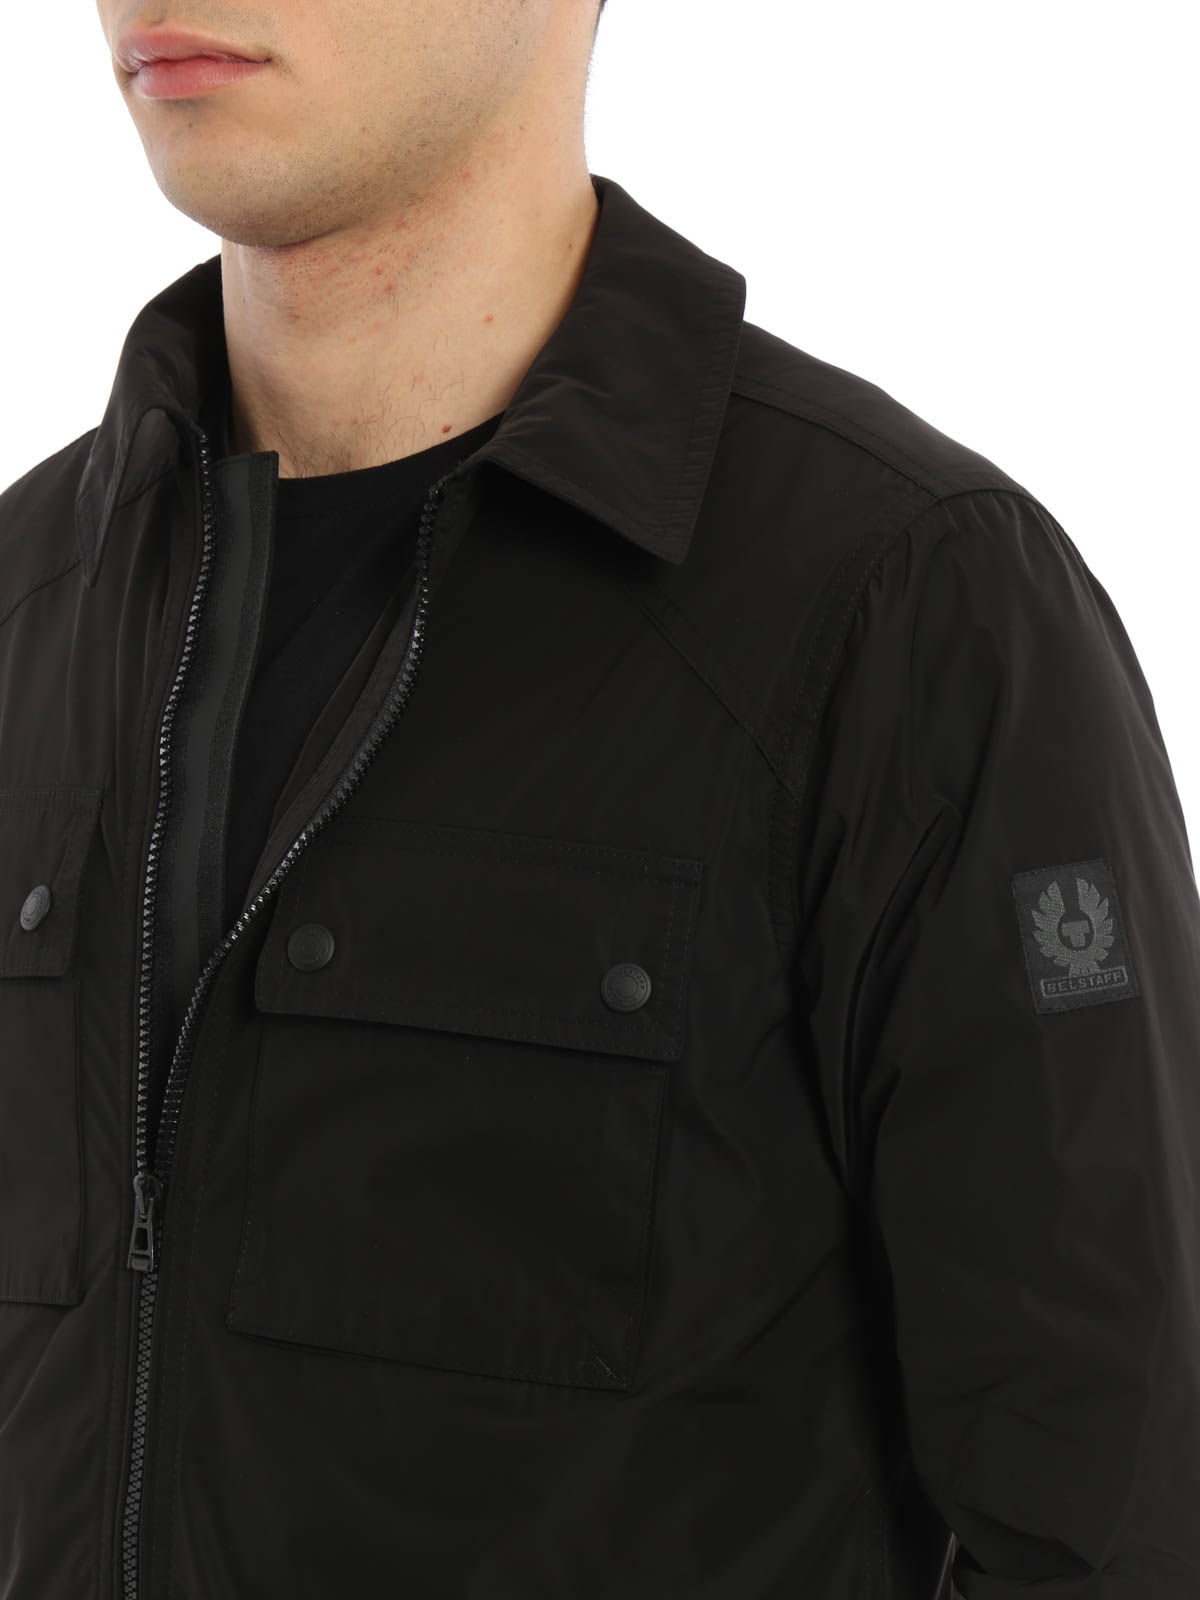 cca8a746667 Belstaff - Shawbury shirt style light jacket - casual jackets ...